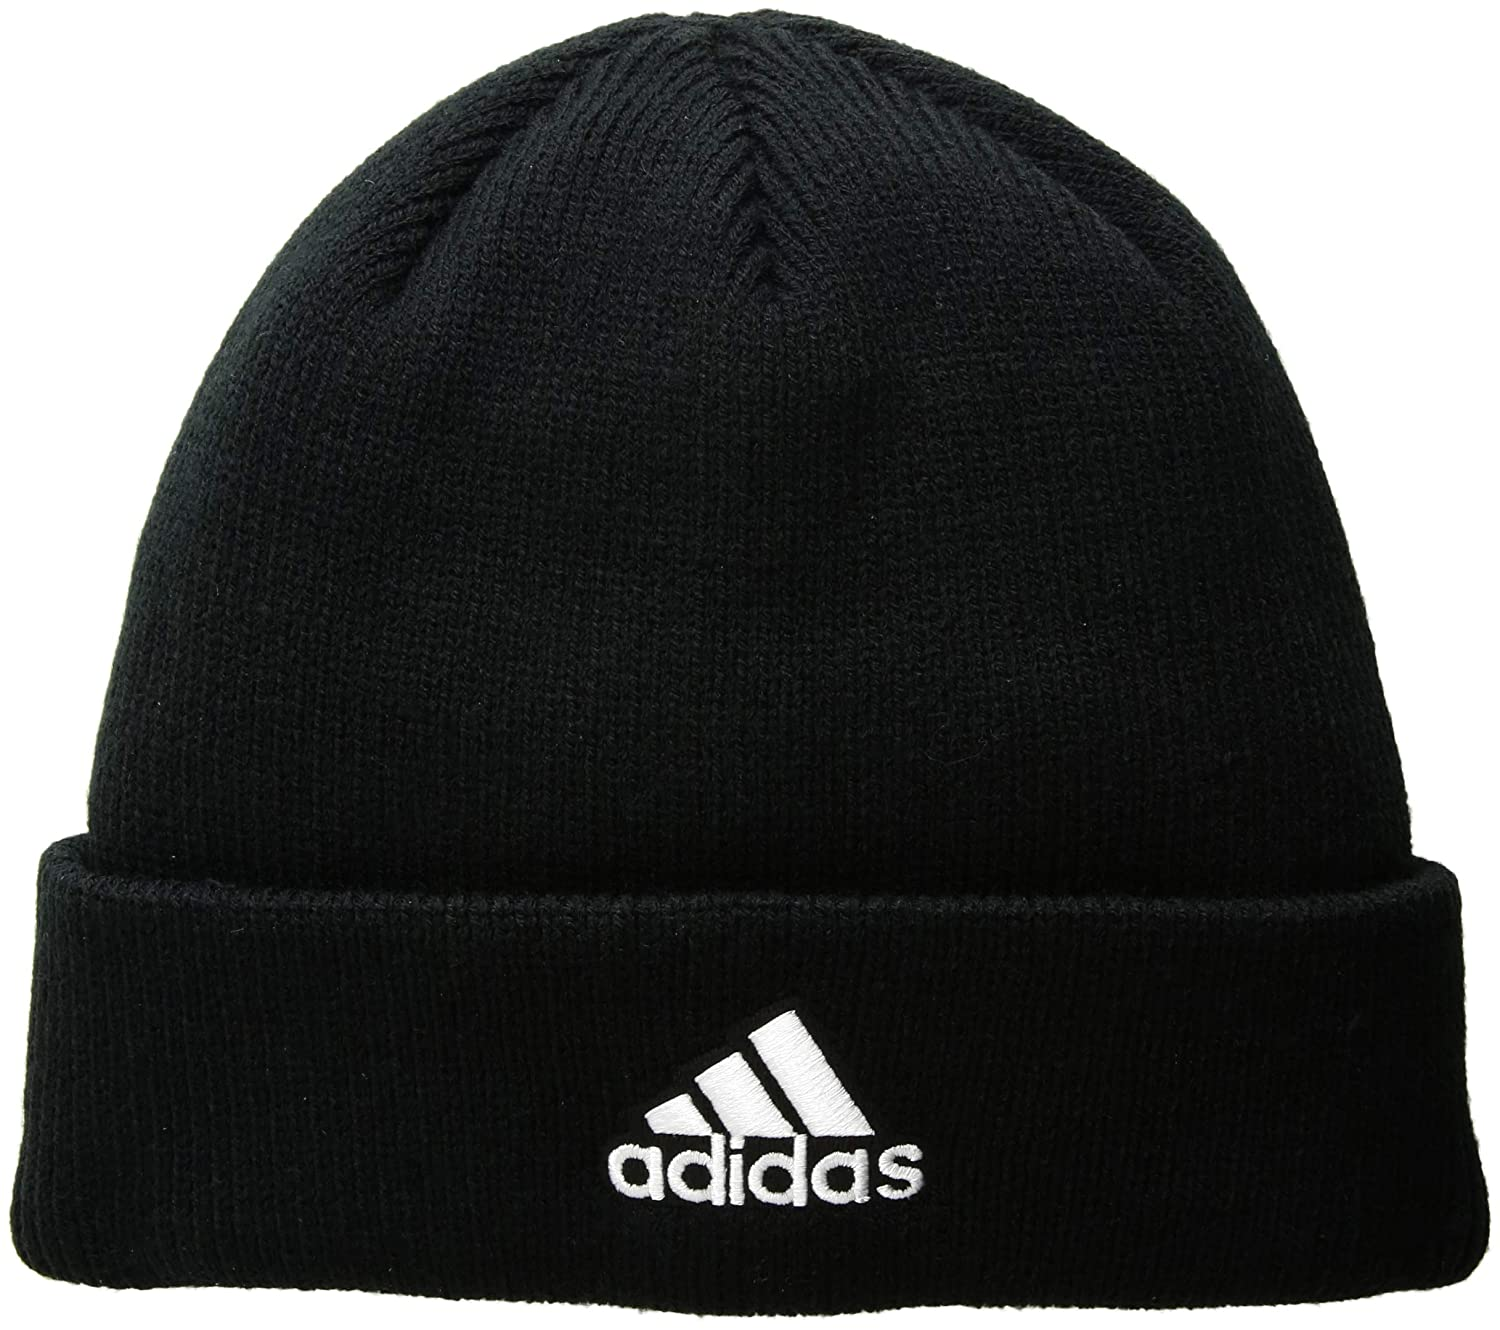 7459de6d5ad Amazon.com  adidas Men s Team Issue Fold Beanie